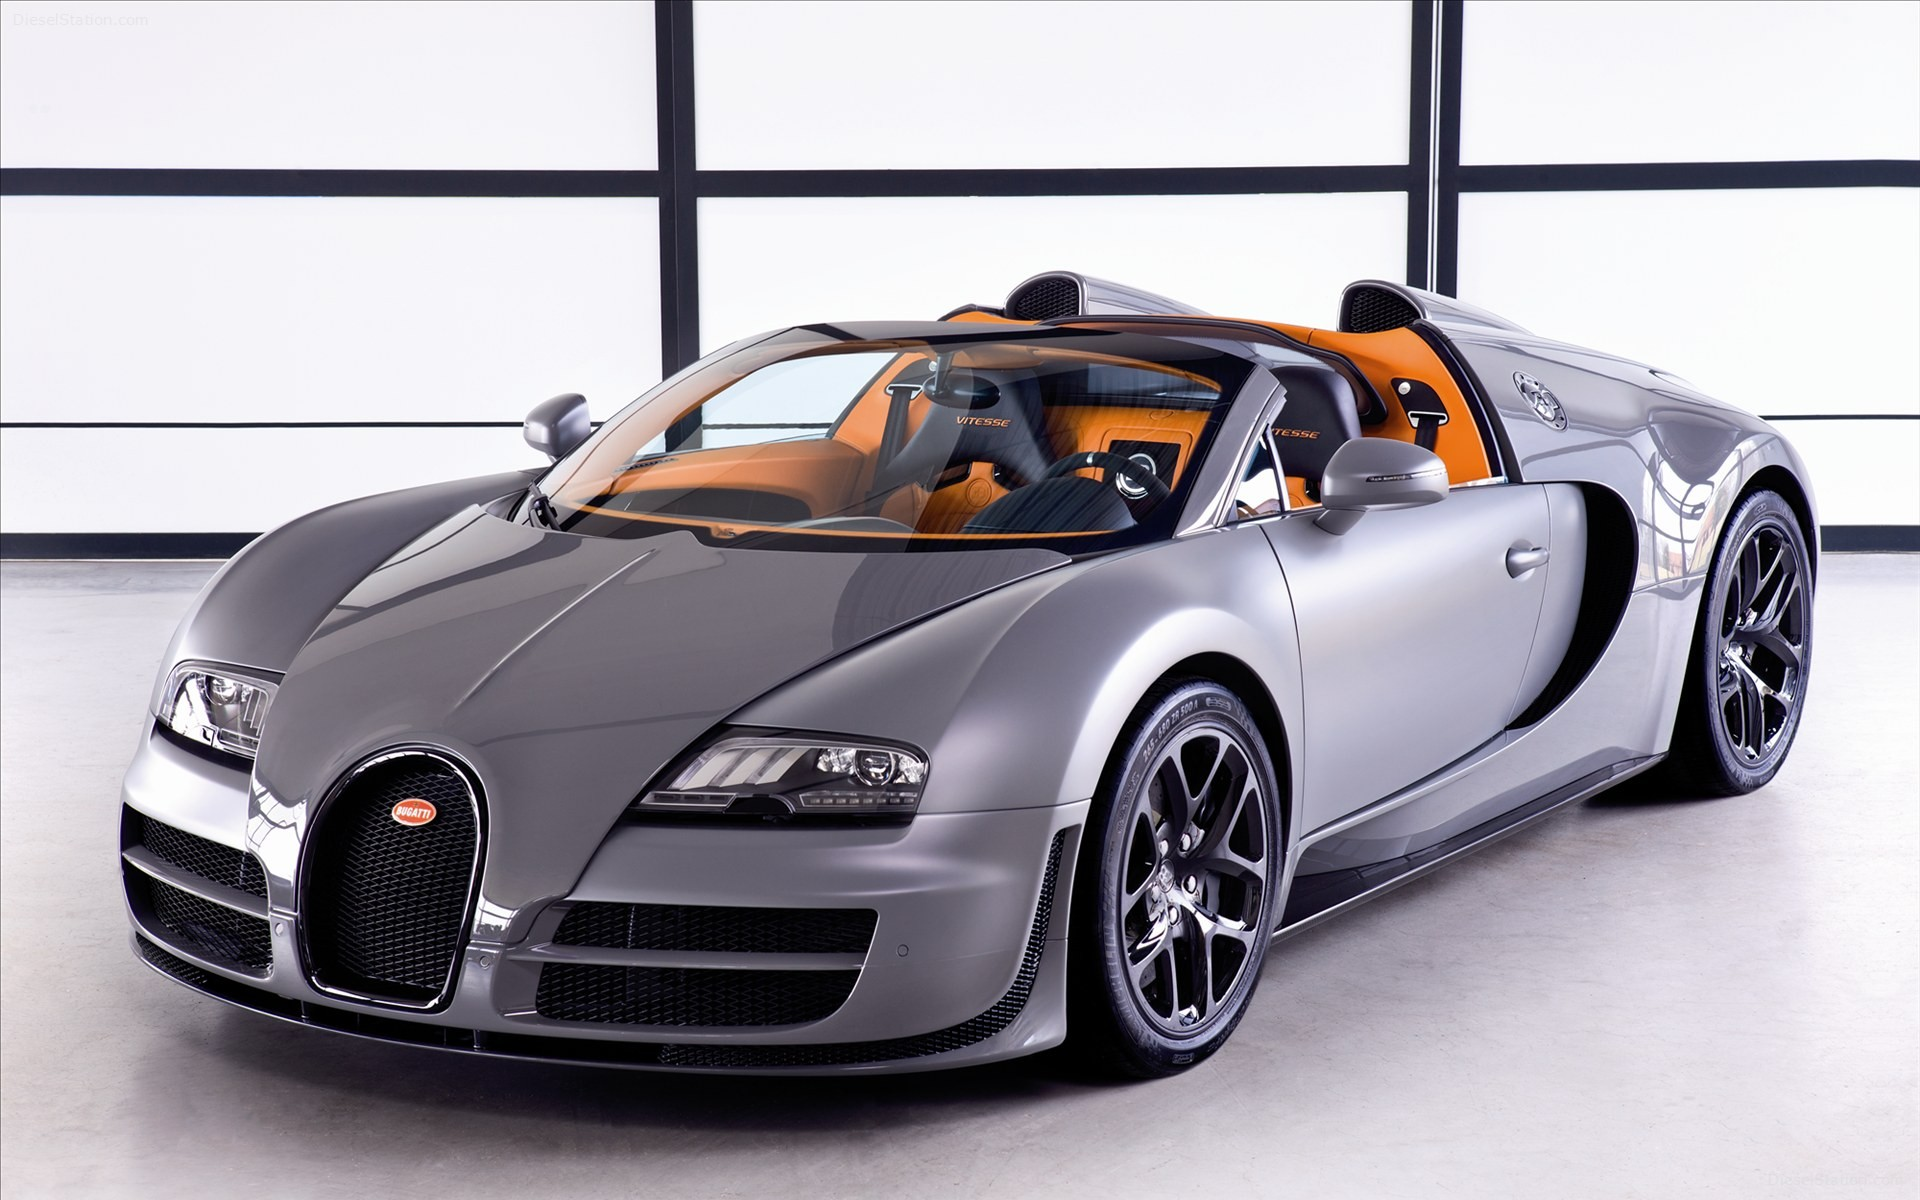 Bugatti Veyron Grand Sport Vitesse 2012 Wallpaper